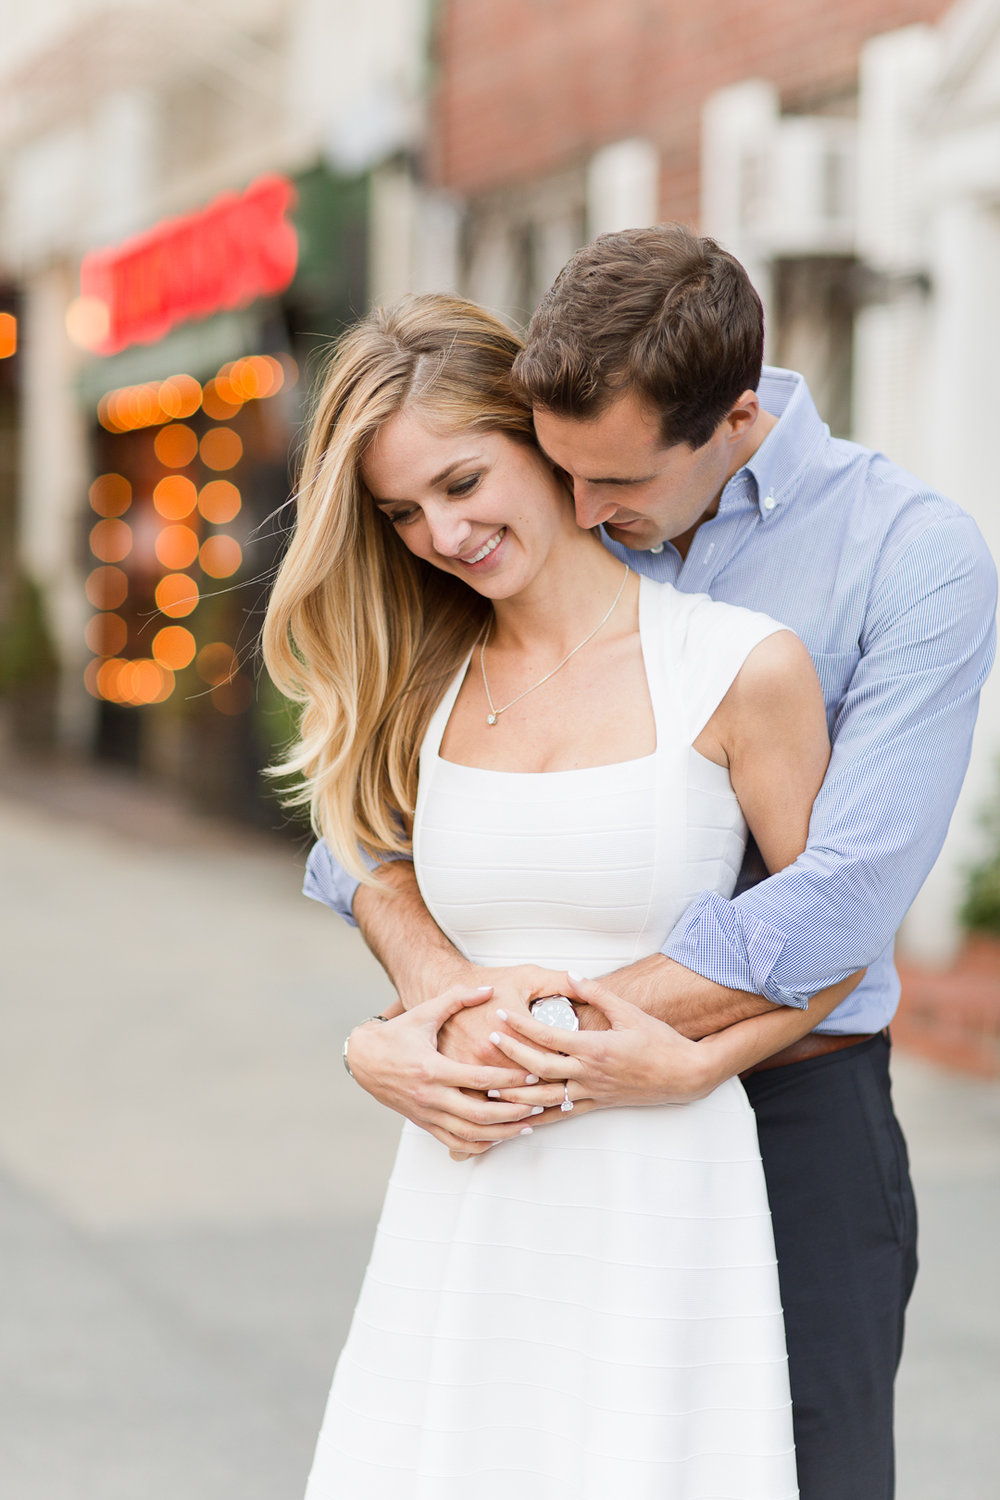 Melissa Kruse Photography - Daniece & Chris West Village Engagement Photos-120.jpg